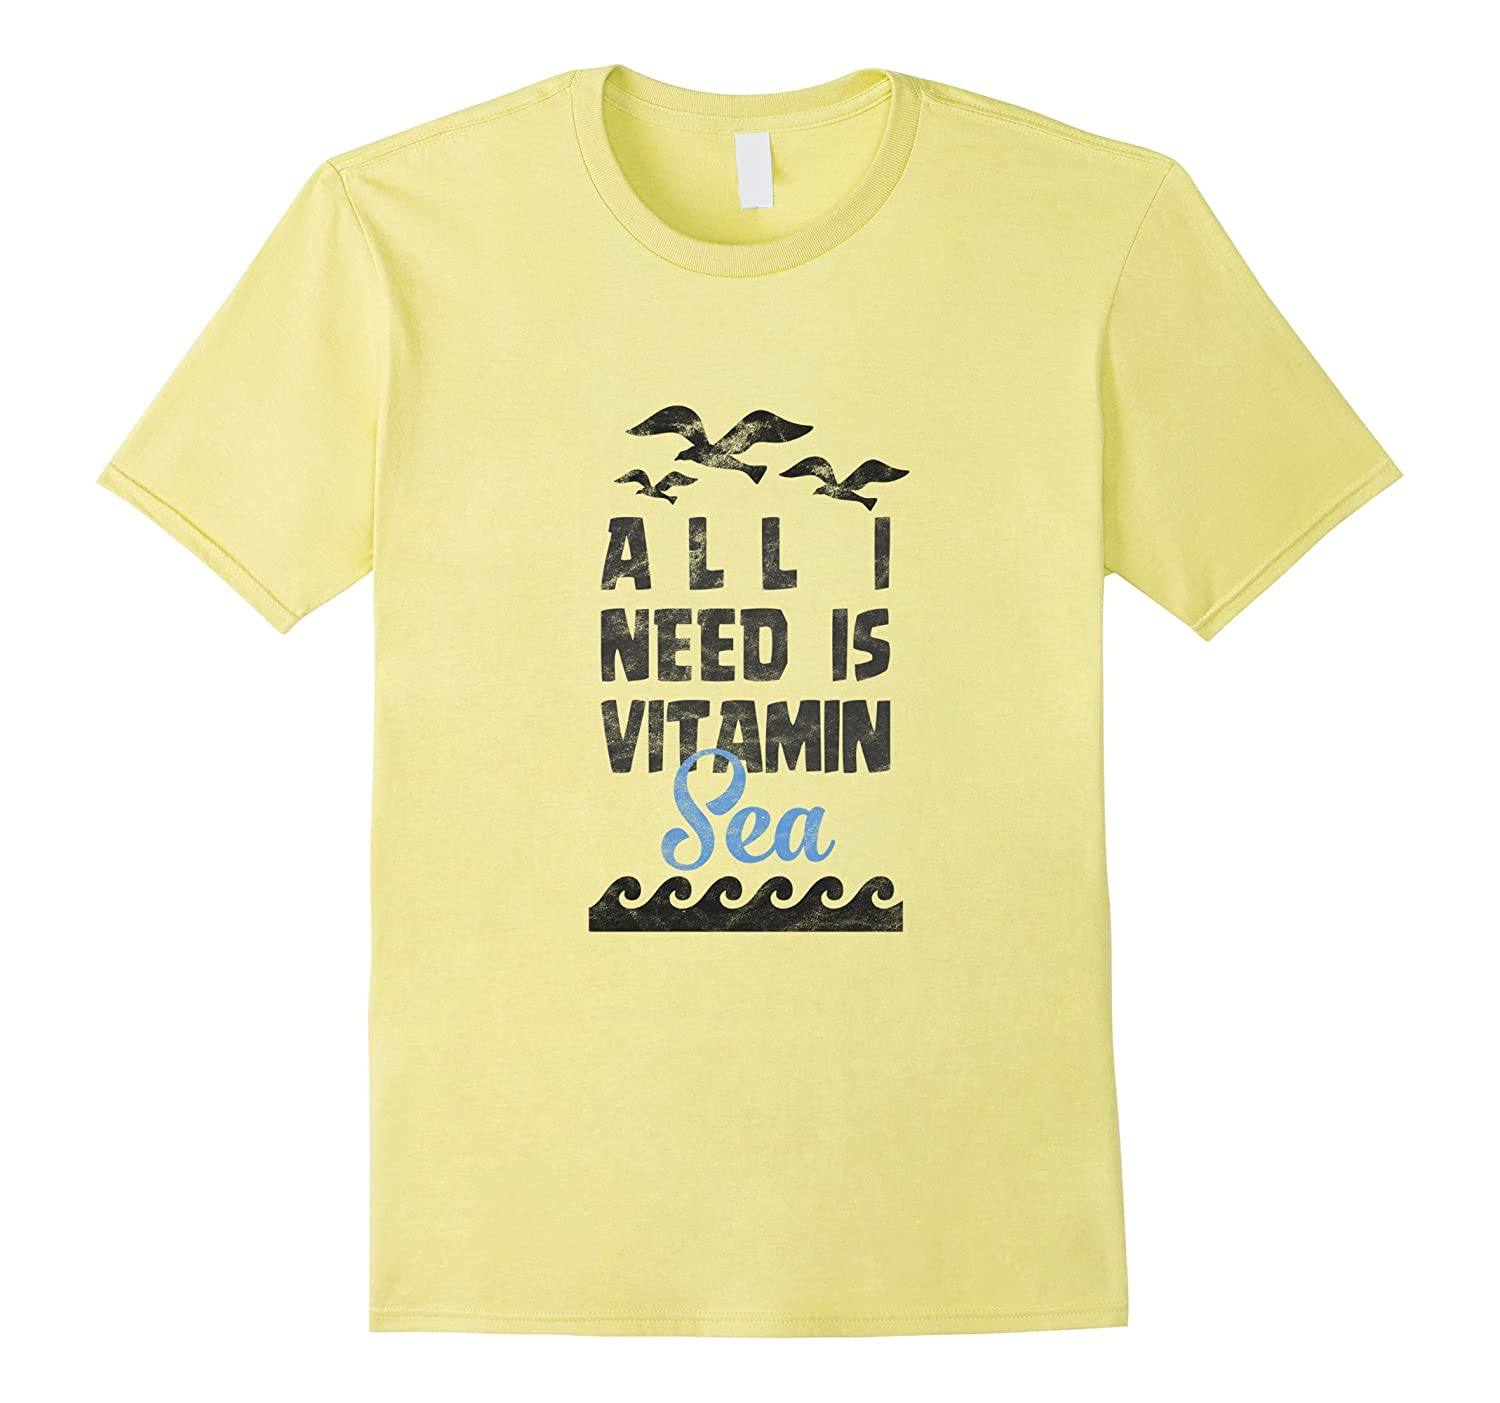 All I Need Is Vitamin Sea T Shirt Vintage Texture PL